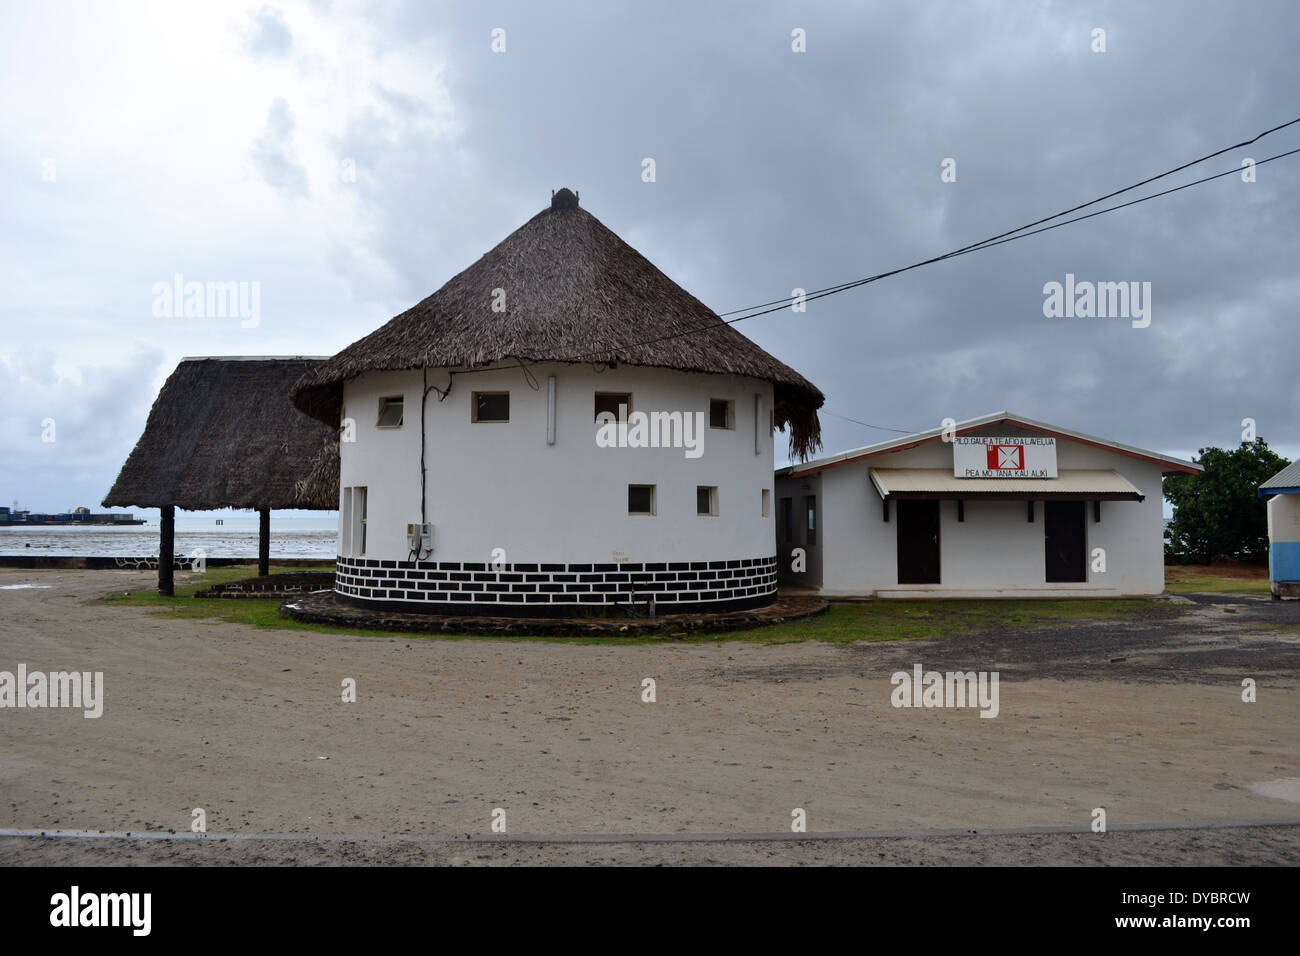 Fale Fono, place used by the local chiefs to address their people, Matautu, Wallis Island, Wallis and Futuna, Melanesia - Stock Image